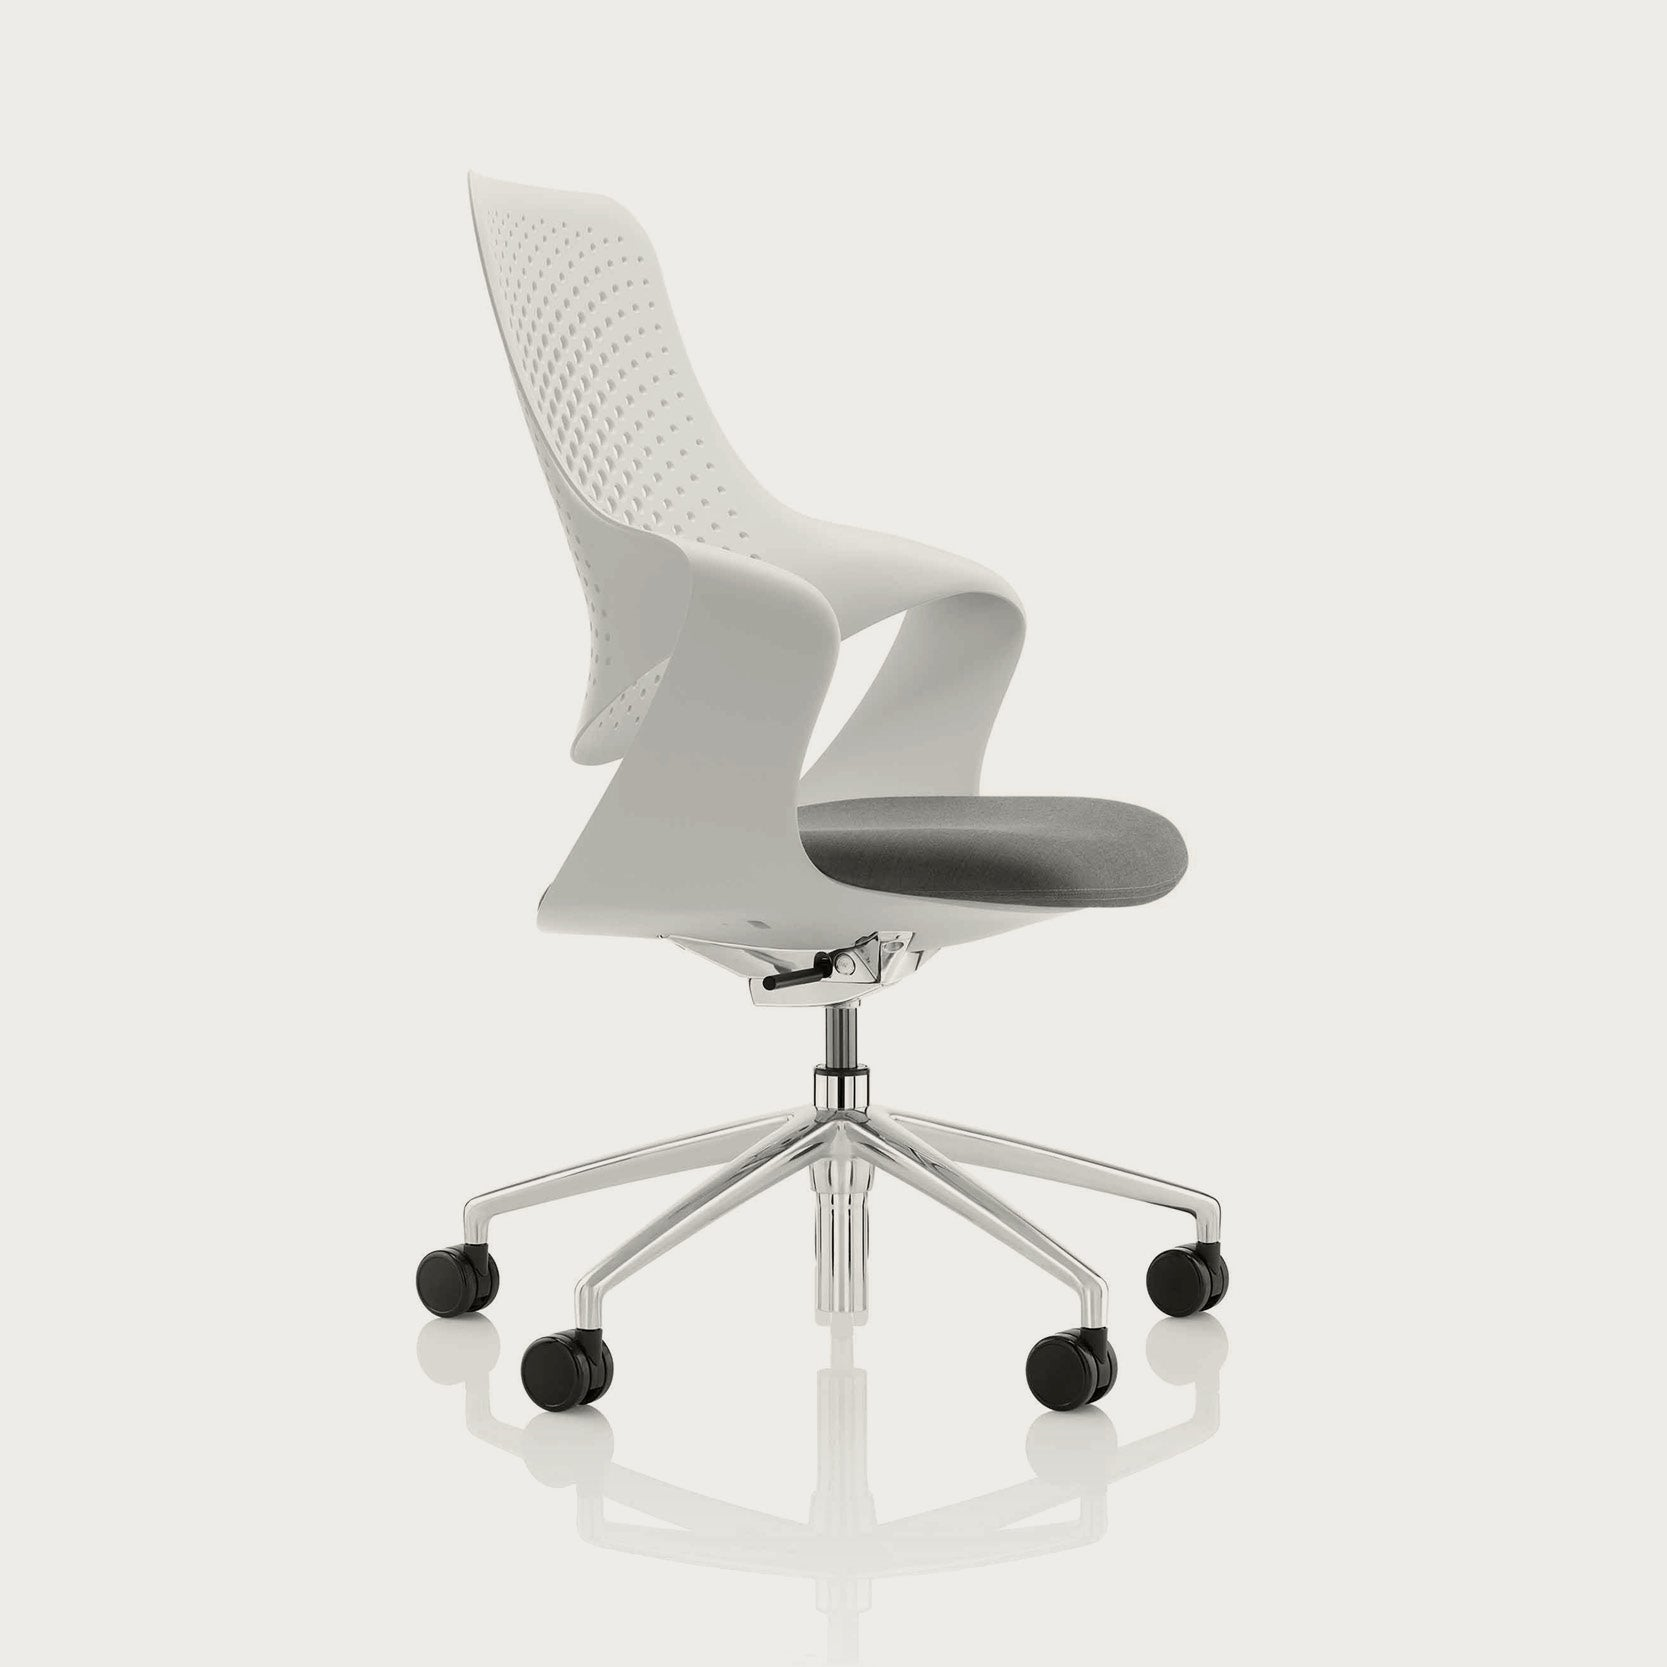 Coza Work Chair